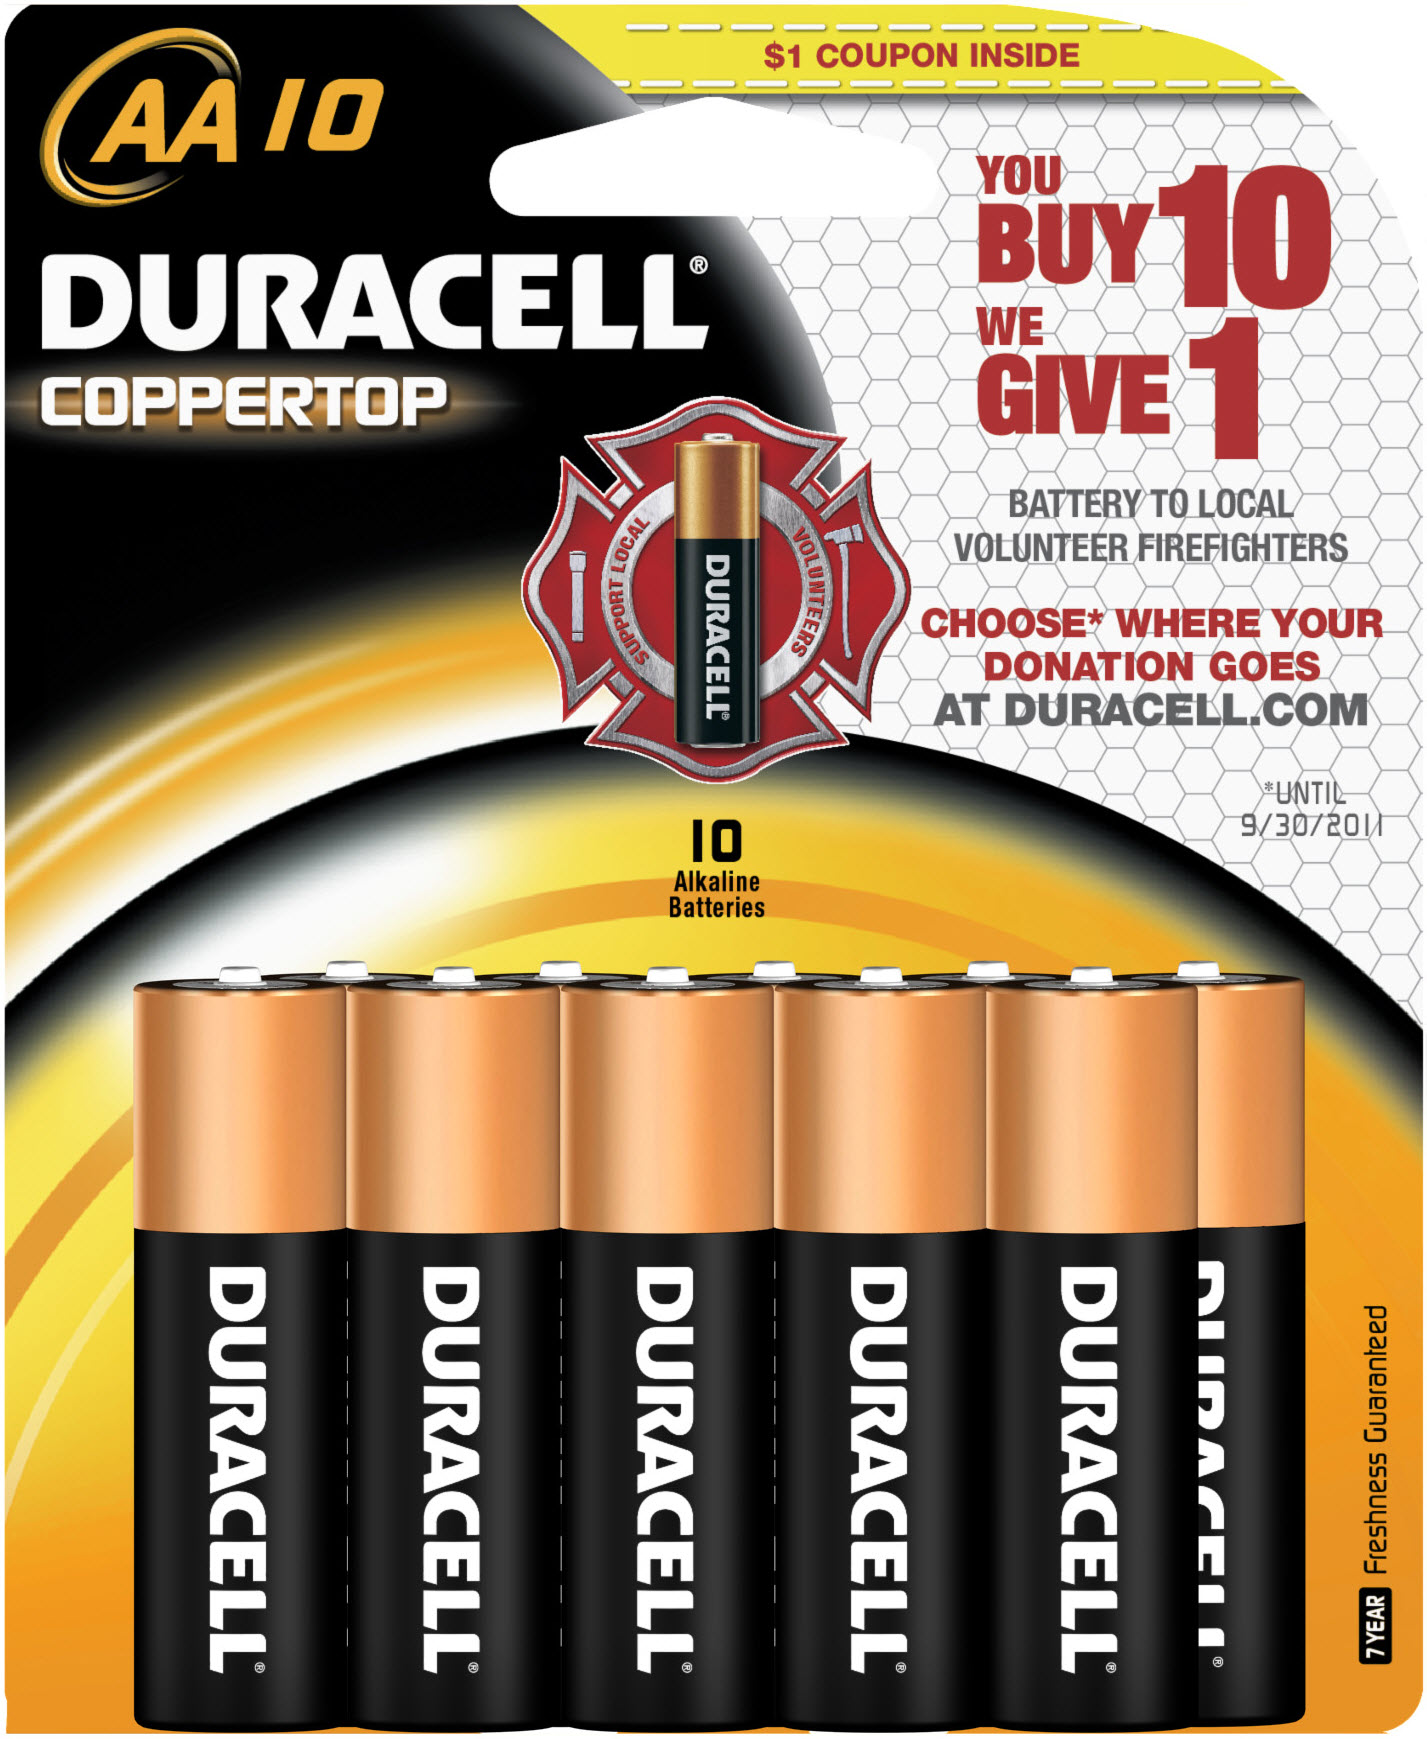 Duracell buy 10 give 1